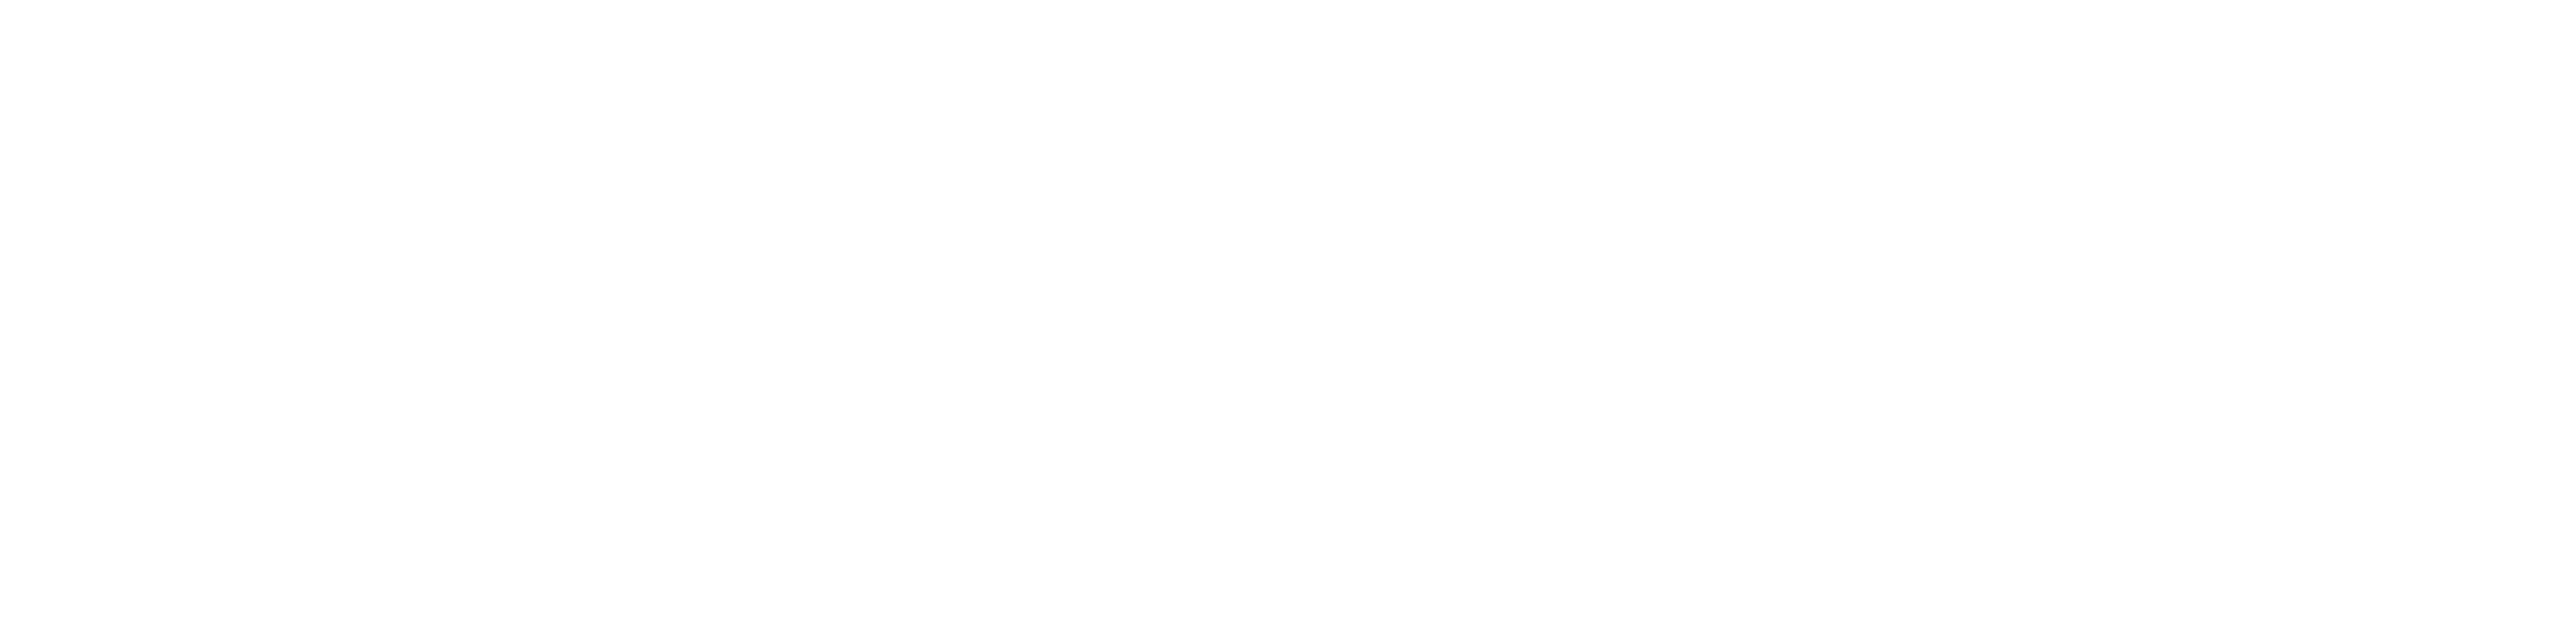 Port Agencies Rotterdam Logo